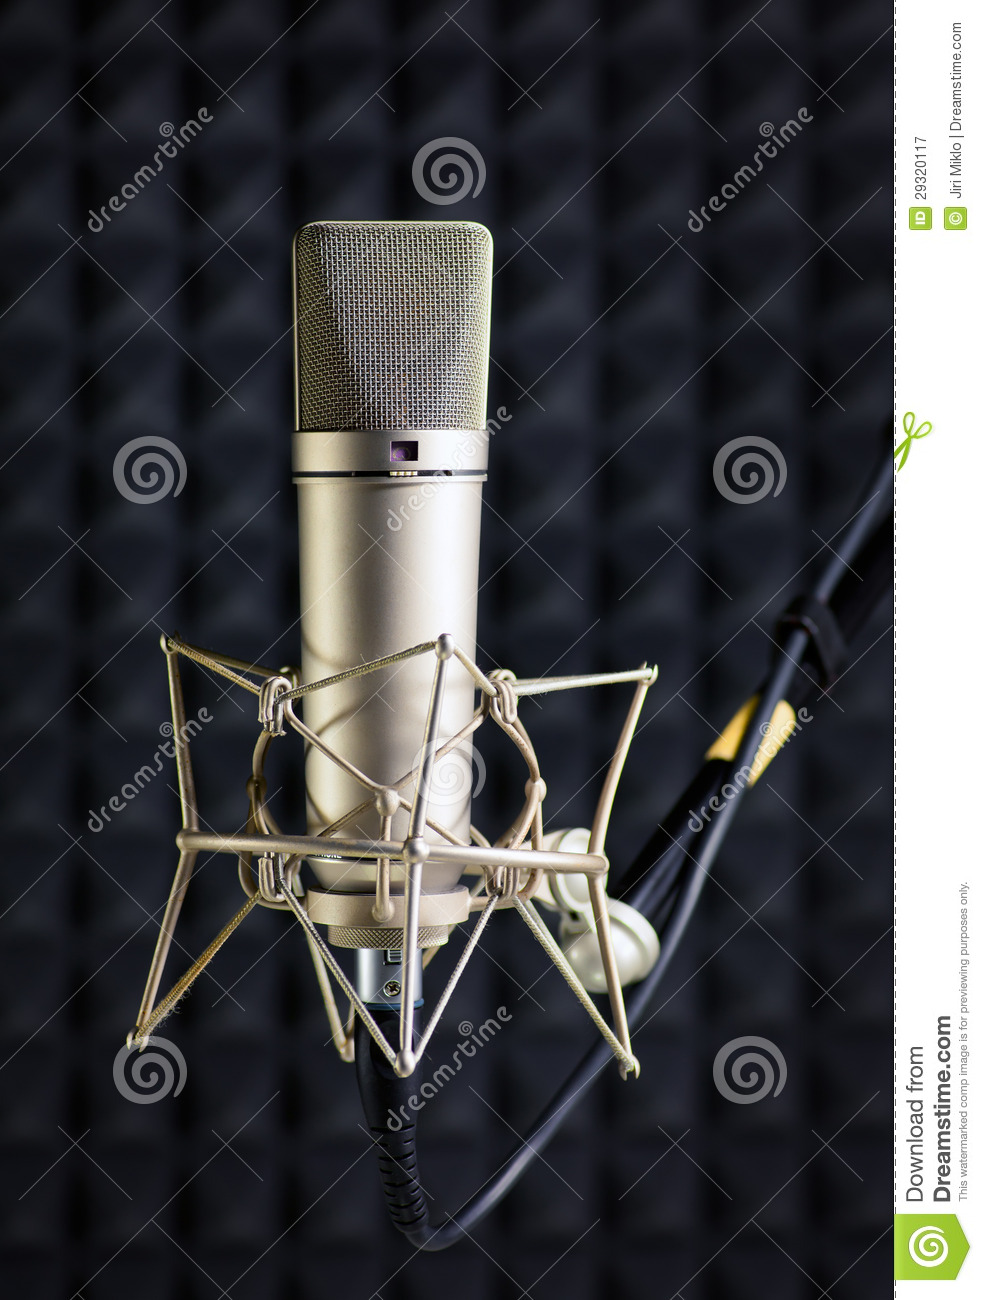 condenser microphone in recording studio stock image image of concert noise 29320117. Black Bedroom Furniture Sets. Home Design Ideas